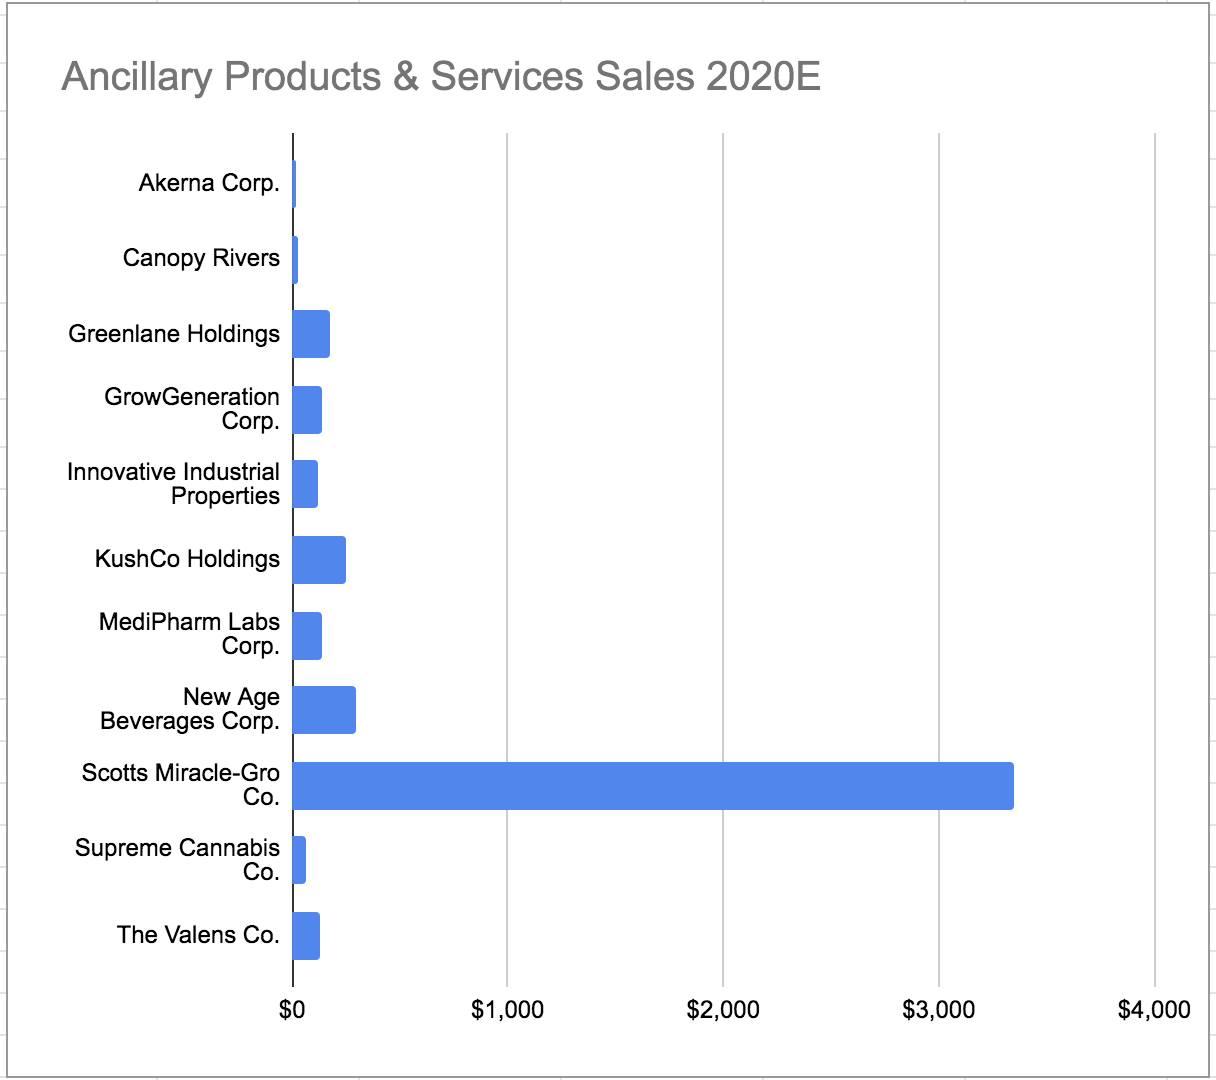 Ancillary Products Sales in US Dollars